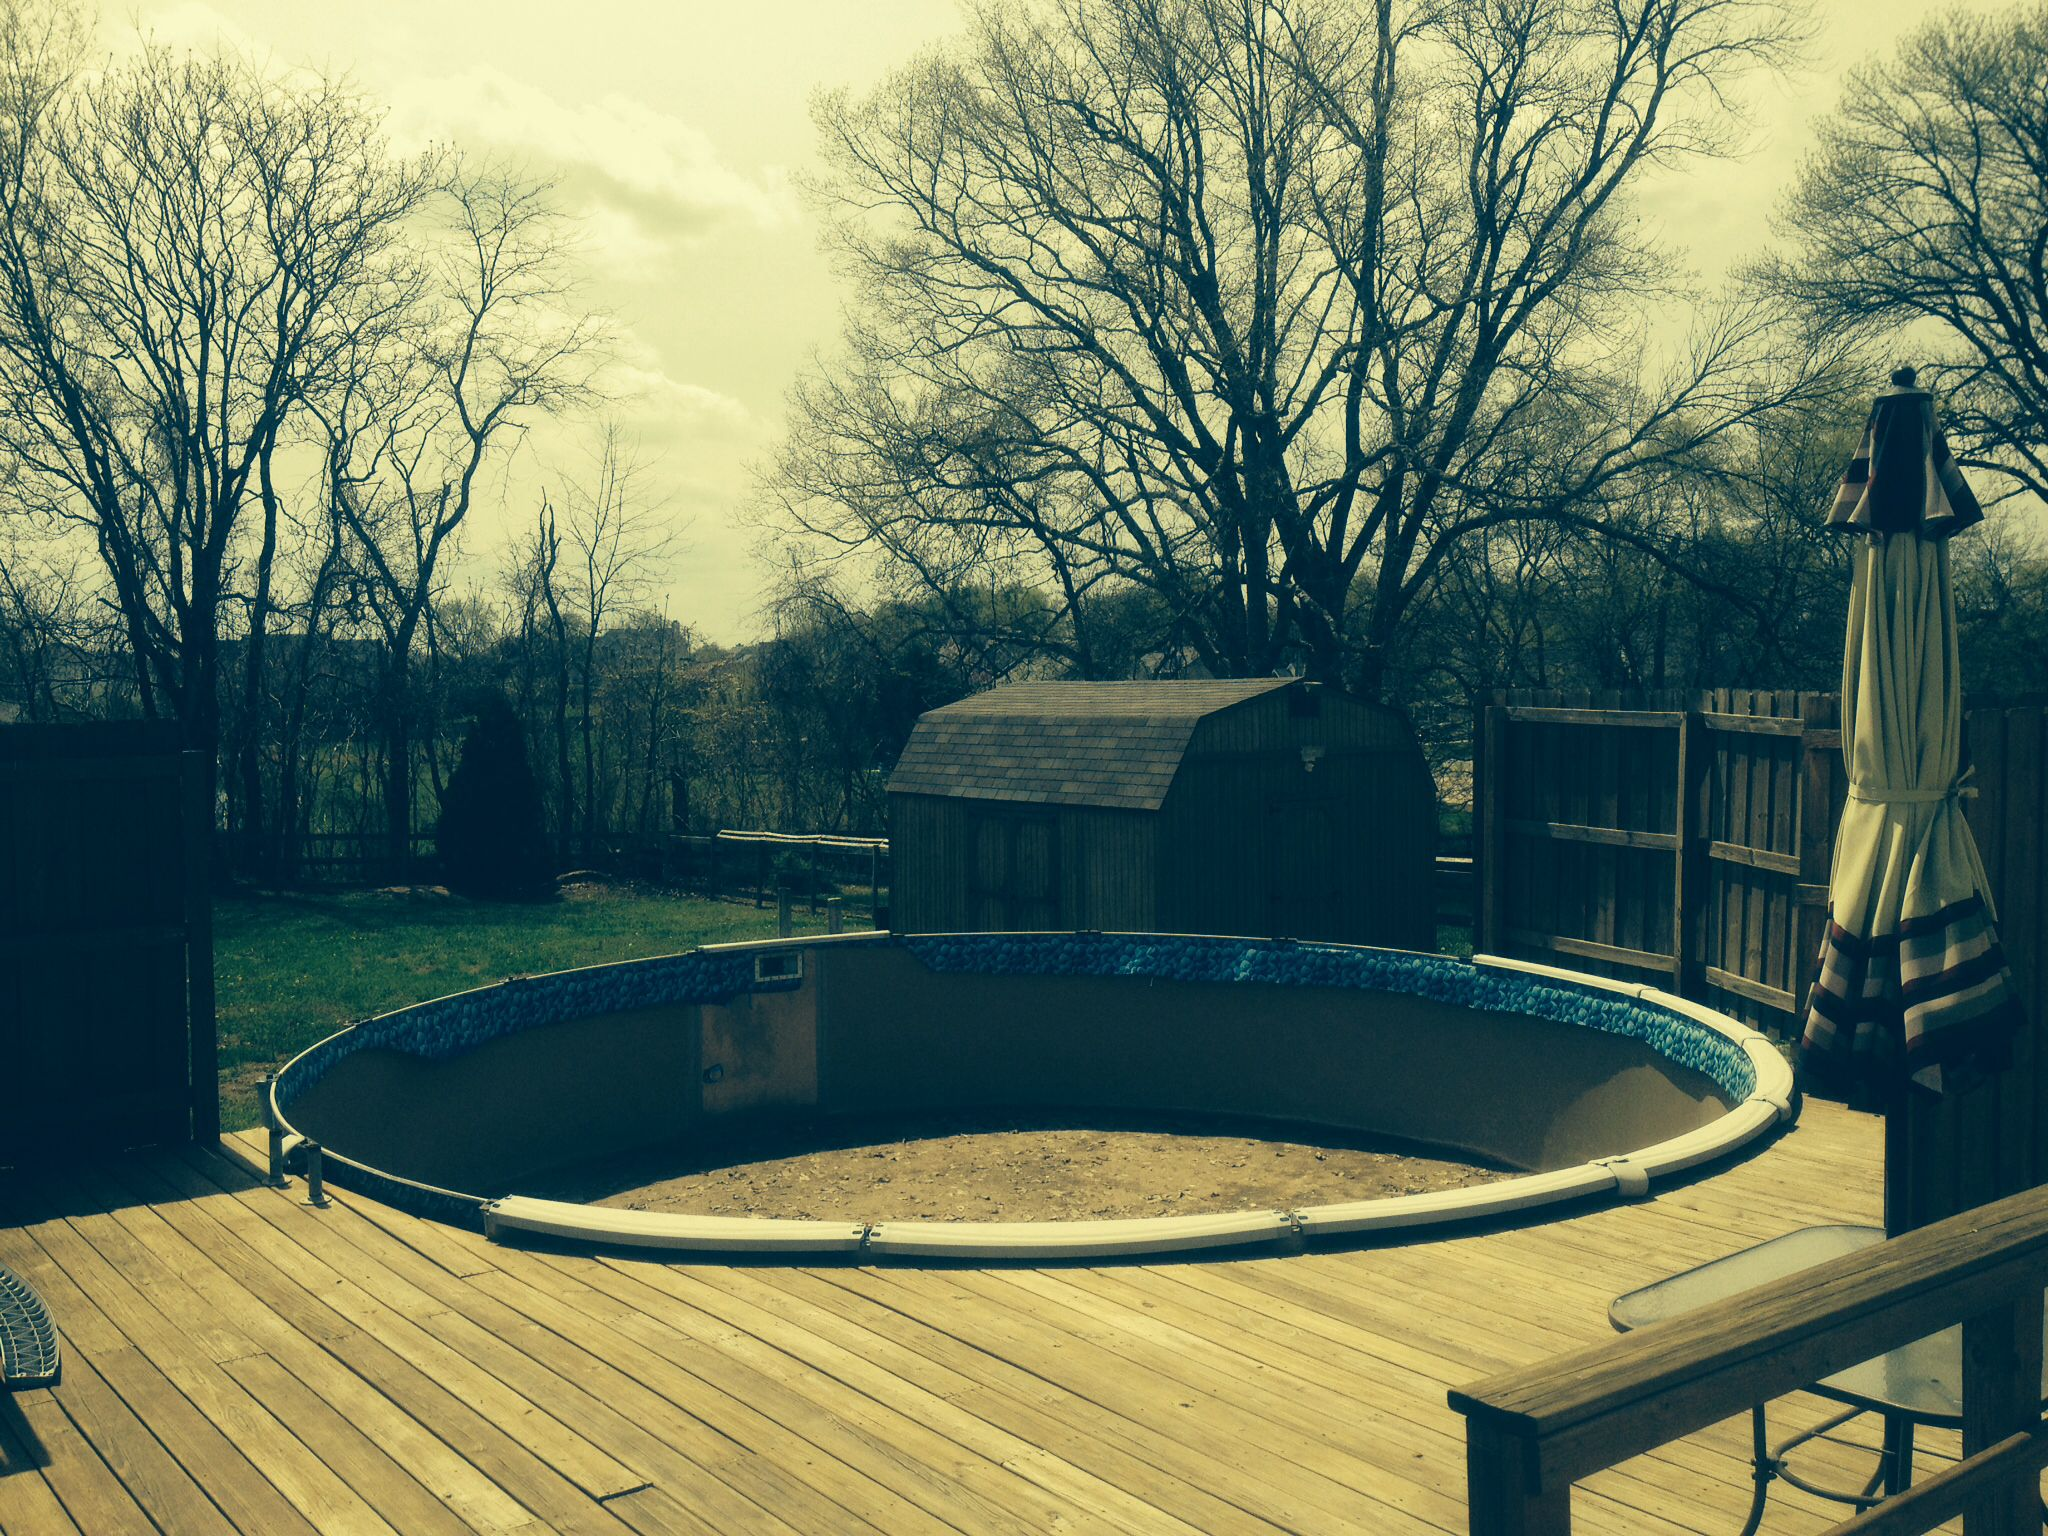 Above ground pool off deck. Would like ideas for ...